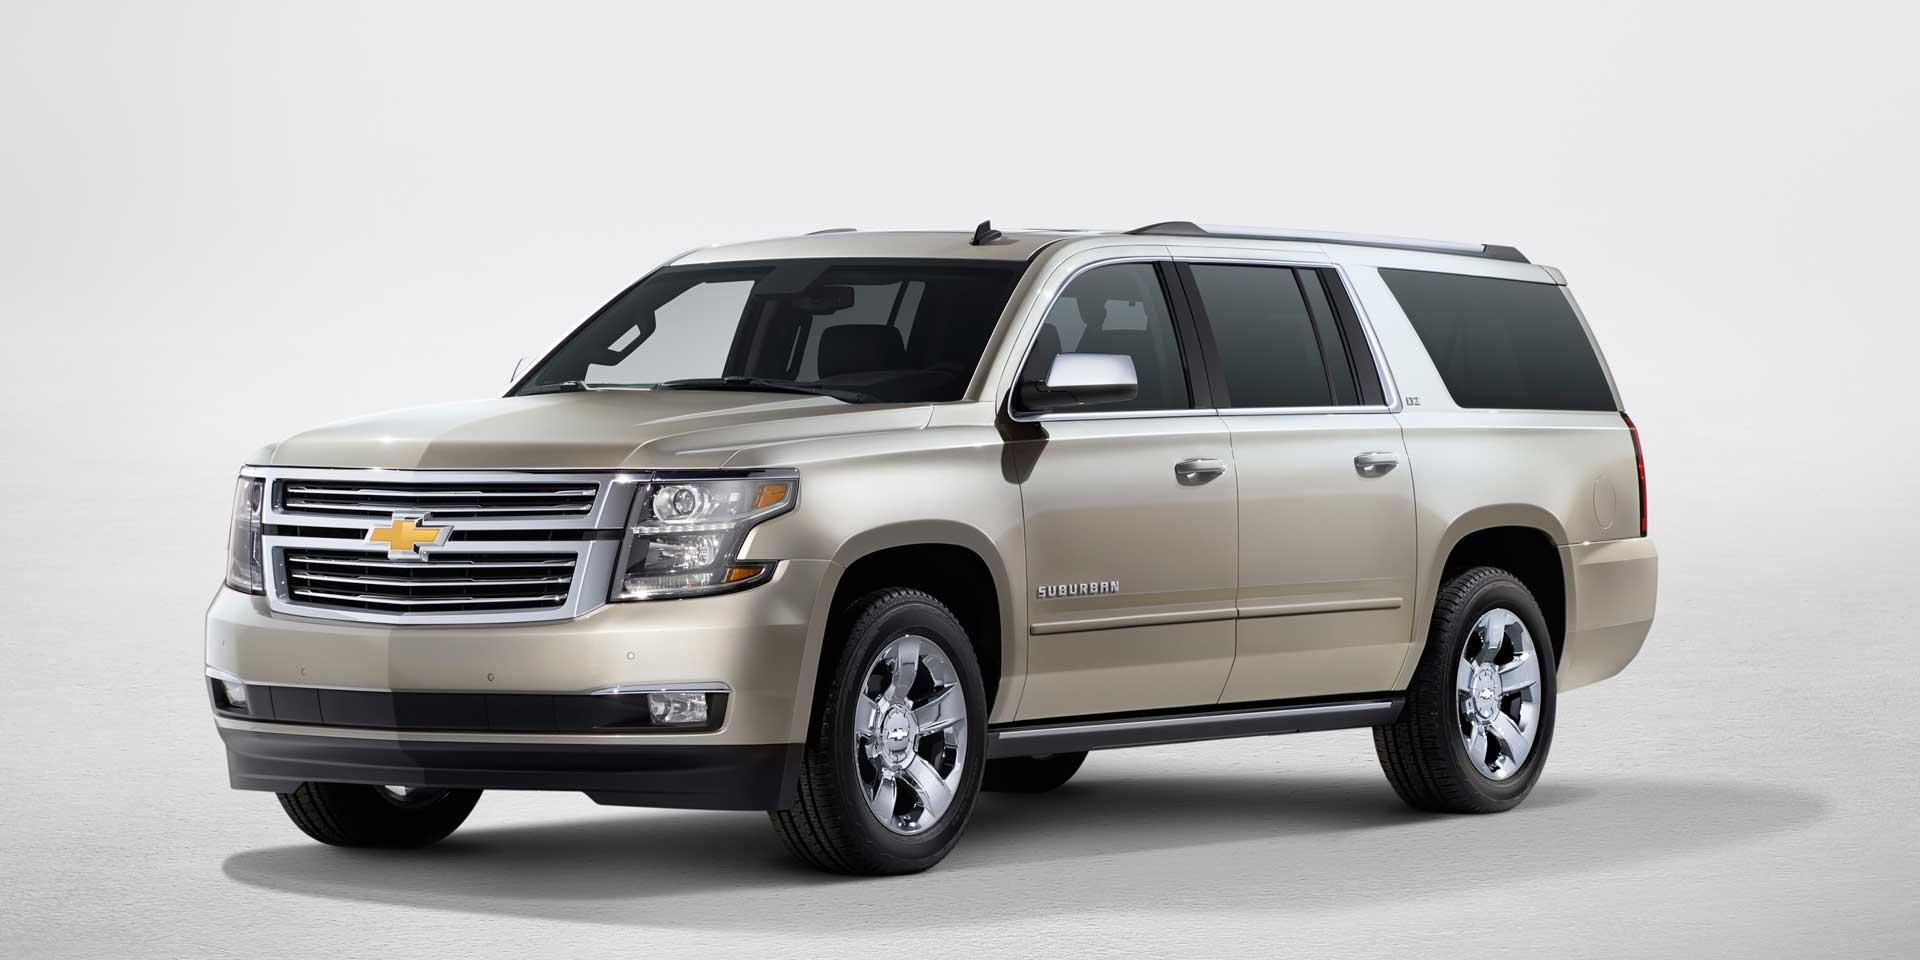 2018 Chevrolet Suburban Vehicles On Display